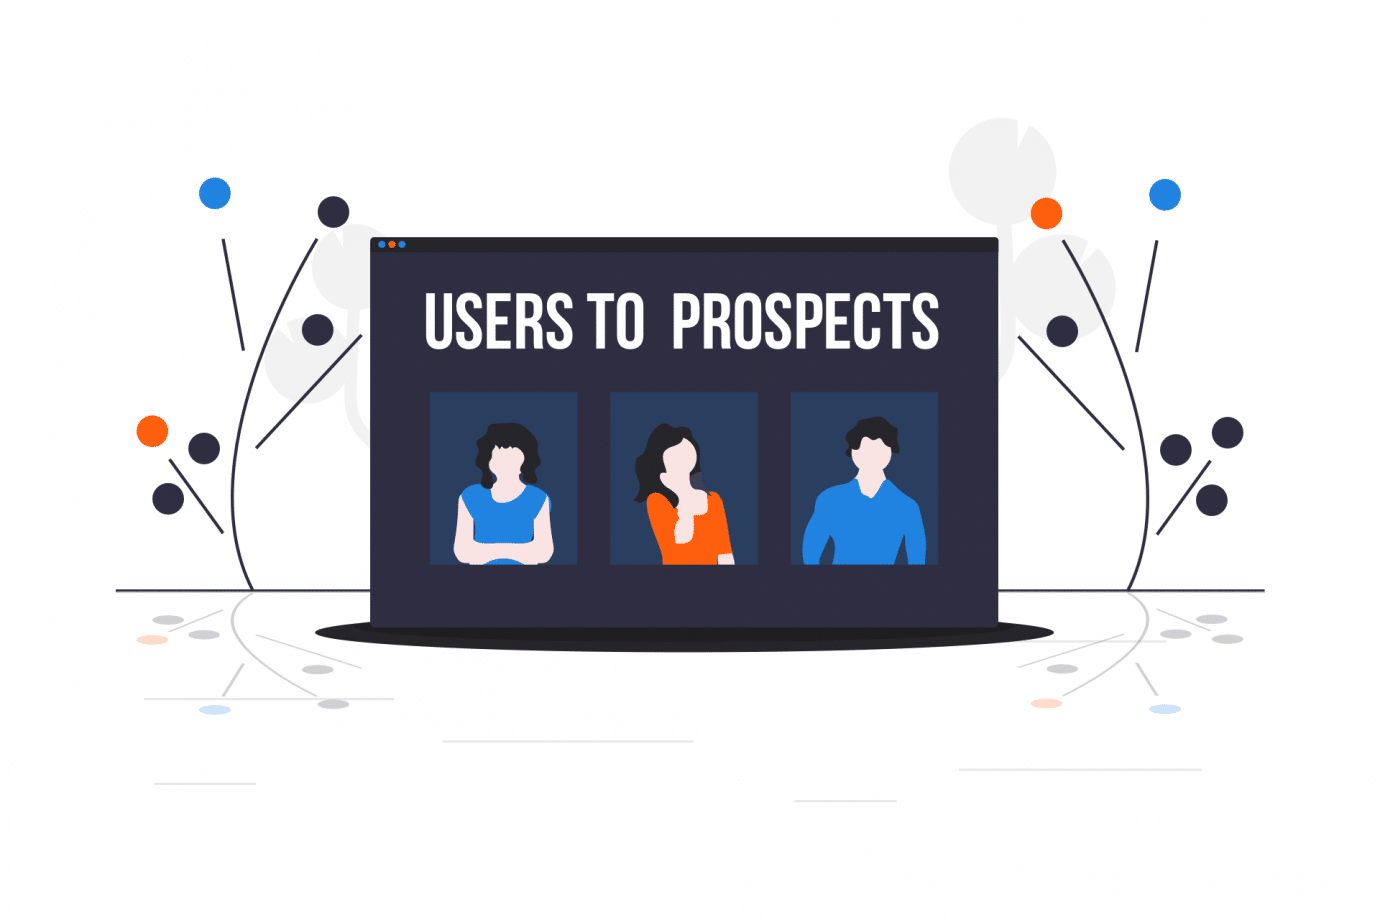 5 Tricks on How to Convert Your Law Firm Website Visitors Into Prospects